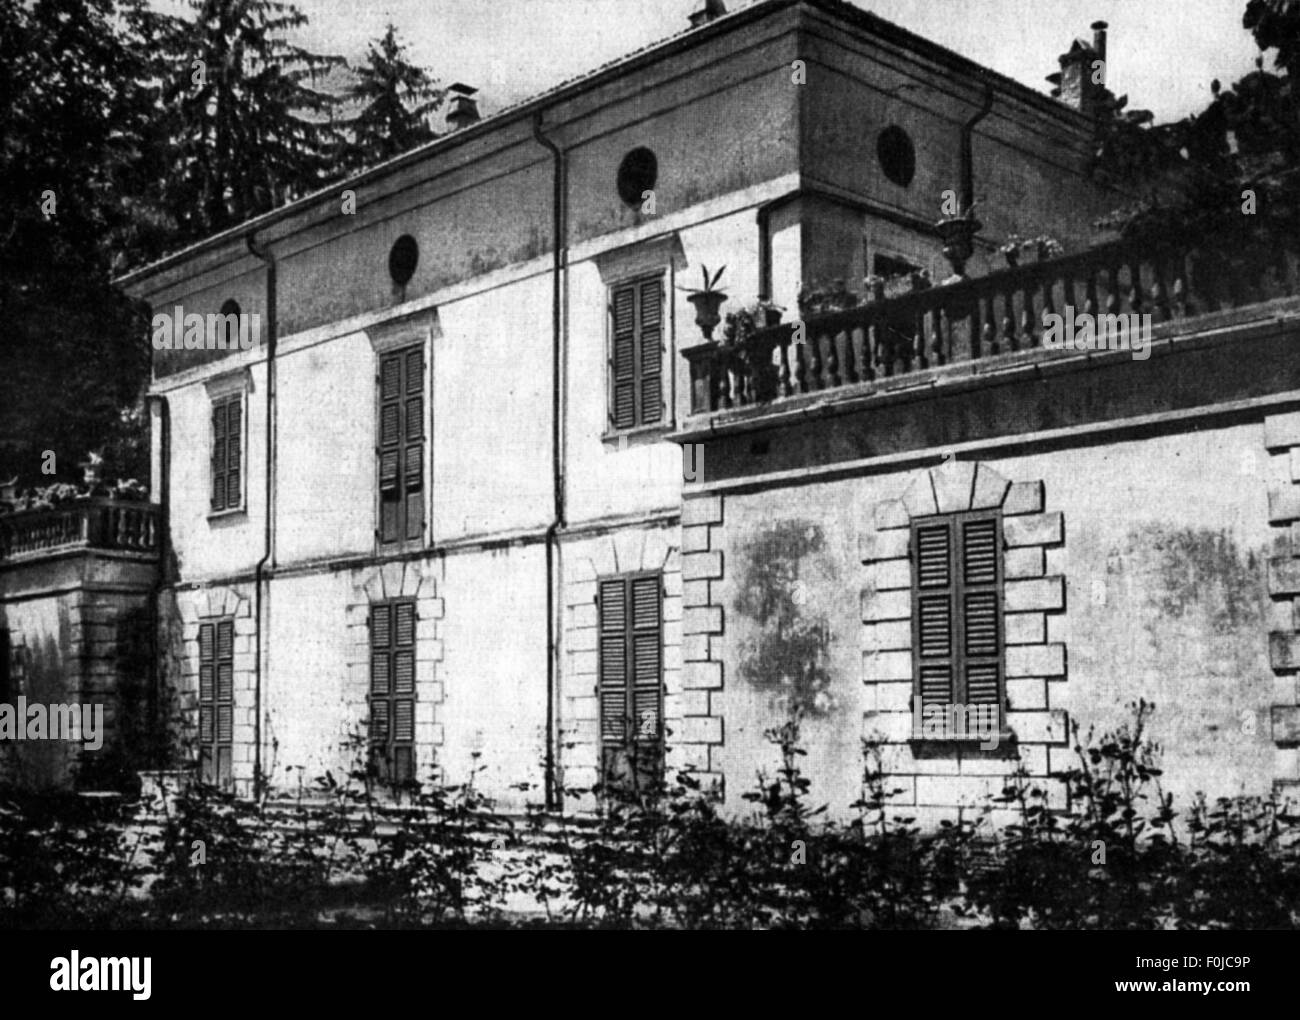 Verdi, Giuseppe, 10.10.1813 - 27.1.1901, Italian composer, his house in Sant' Agata near Busseto, Additional - Stock Image